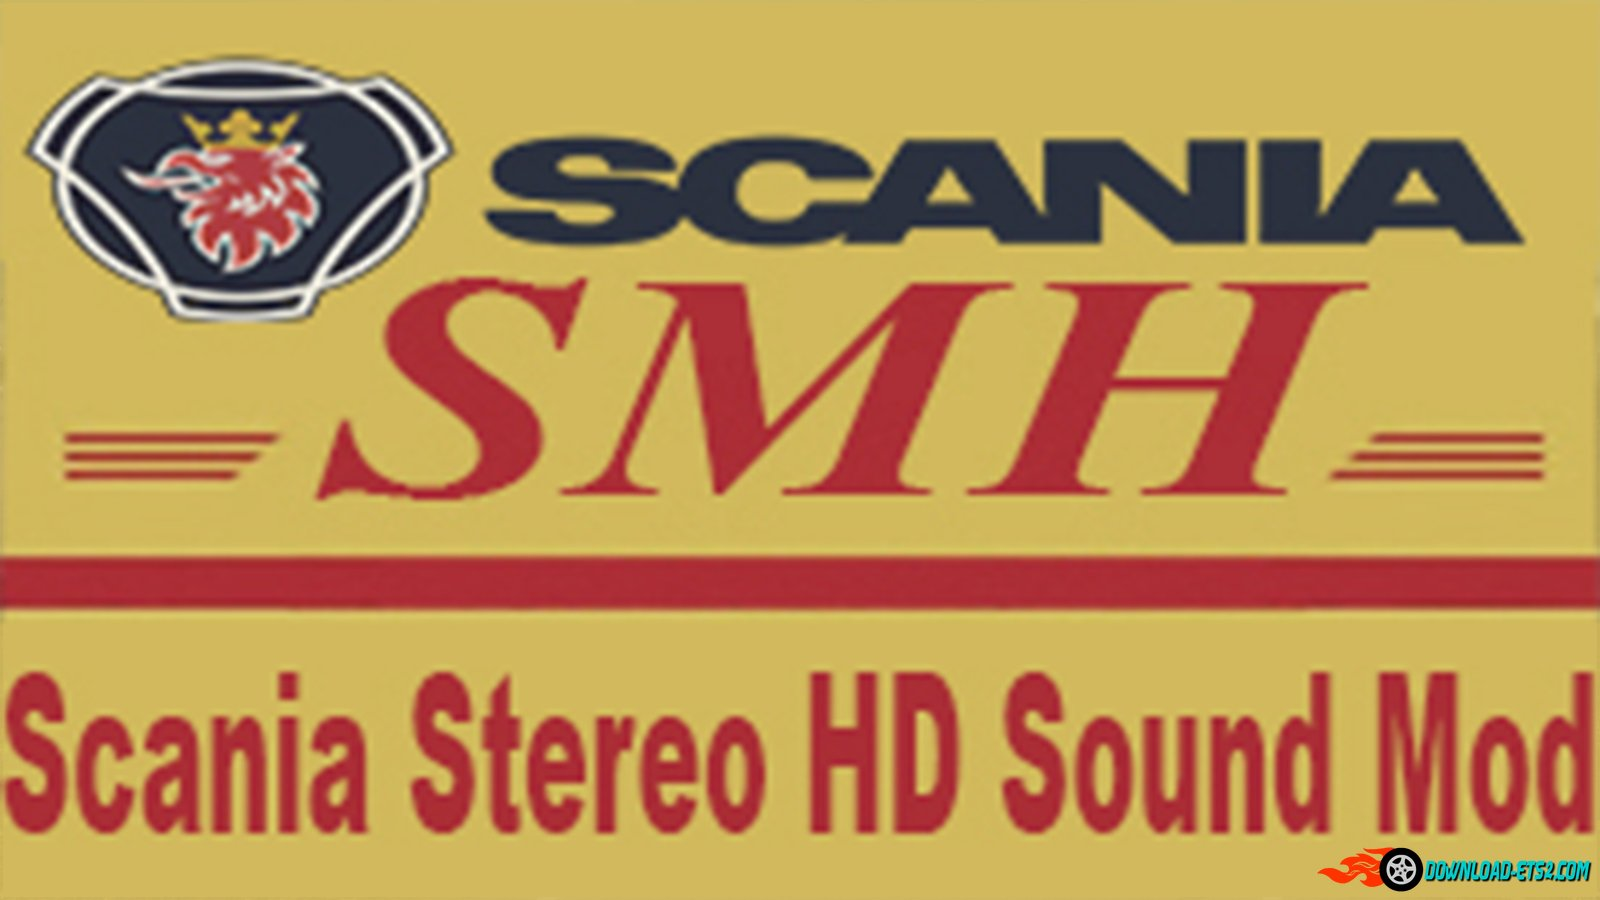 SmhKzl - Scania Stereo HD Sound Mod